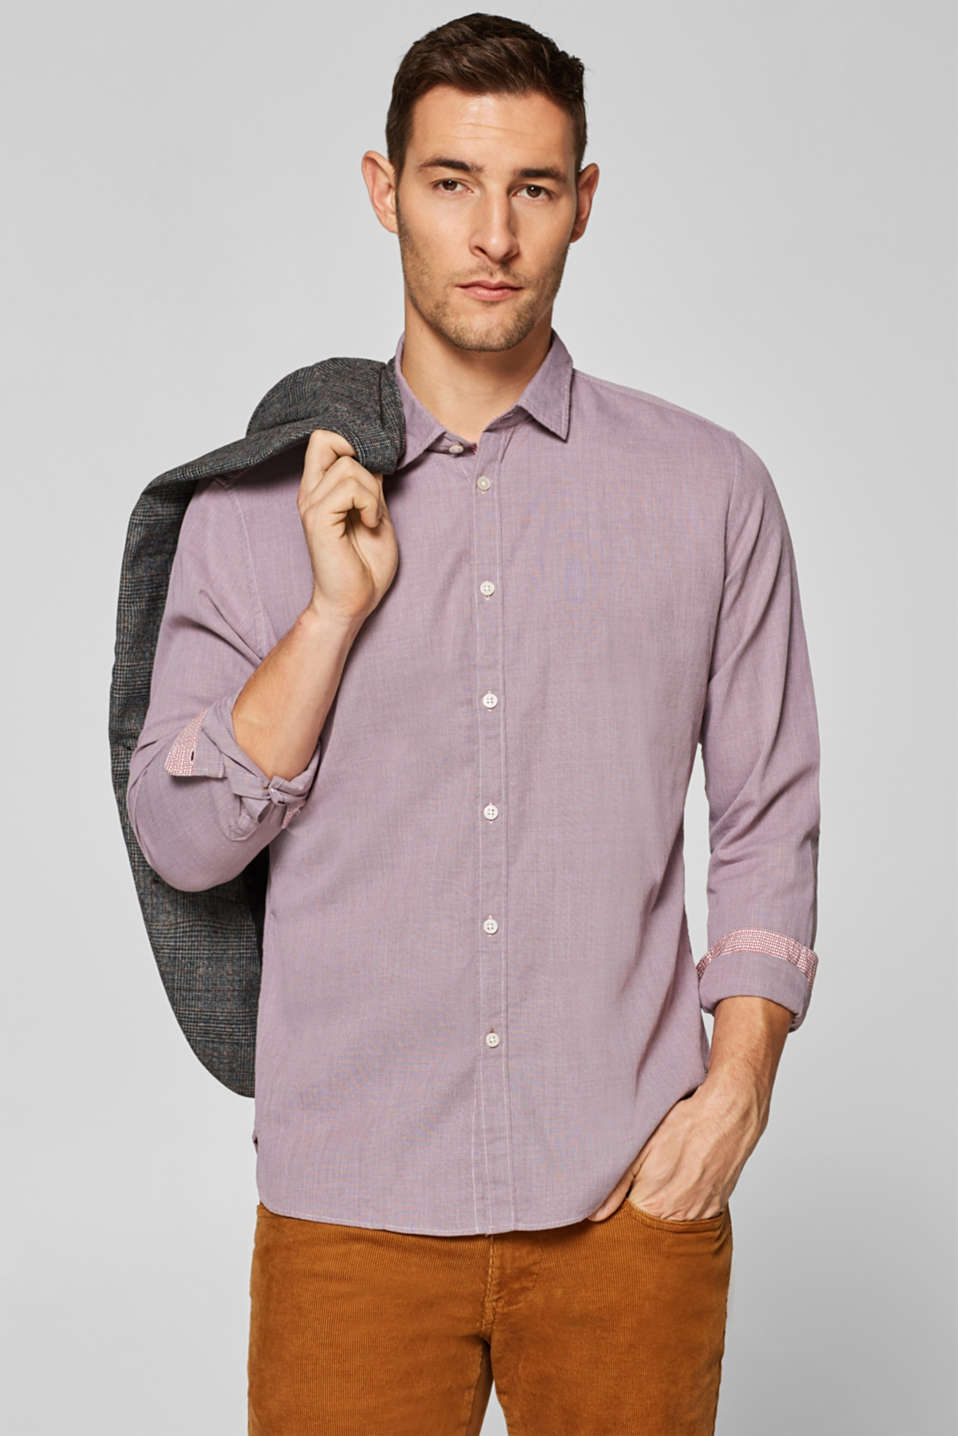 Esprit - 100% cotton shirt